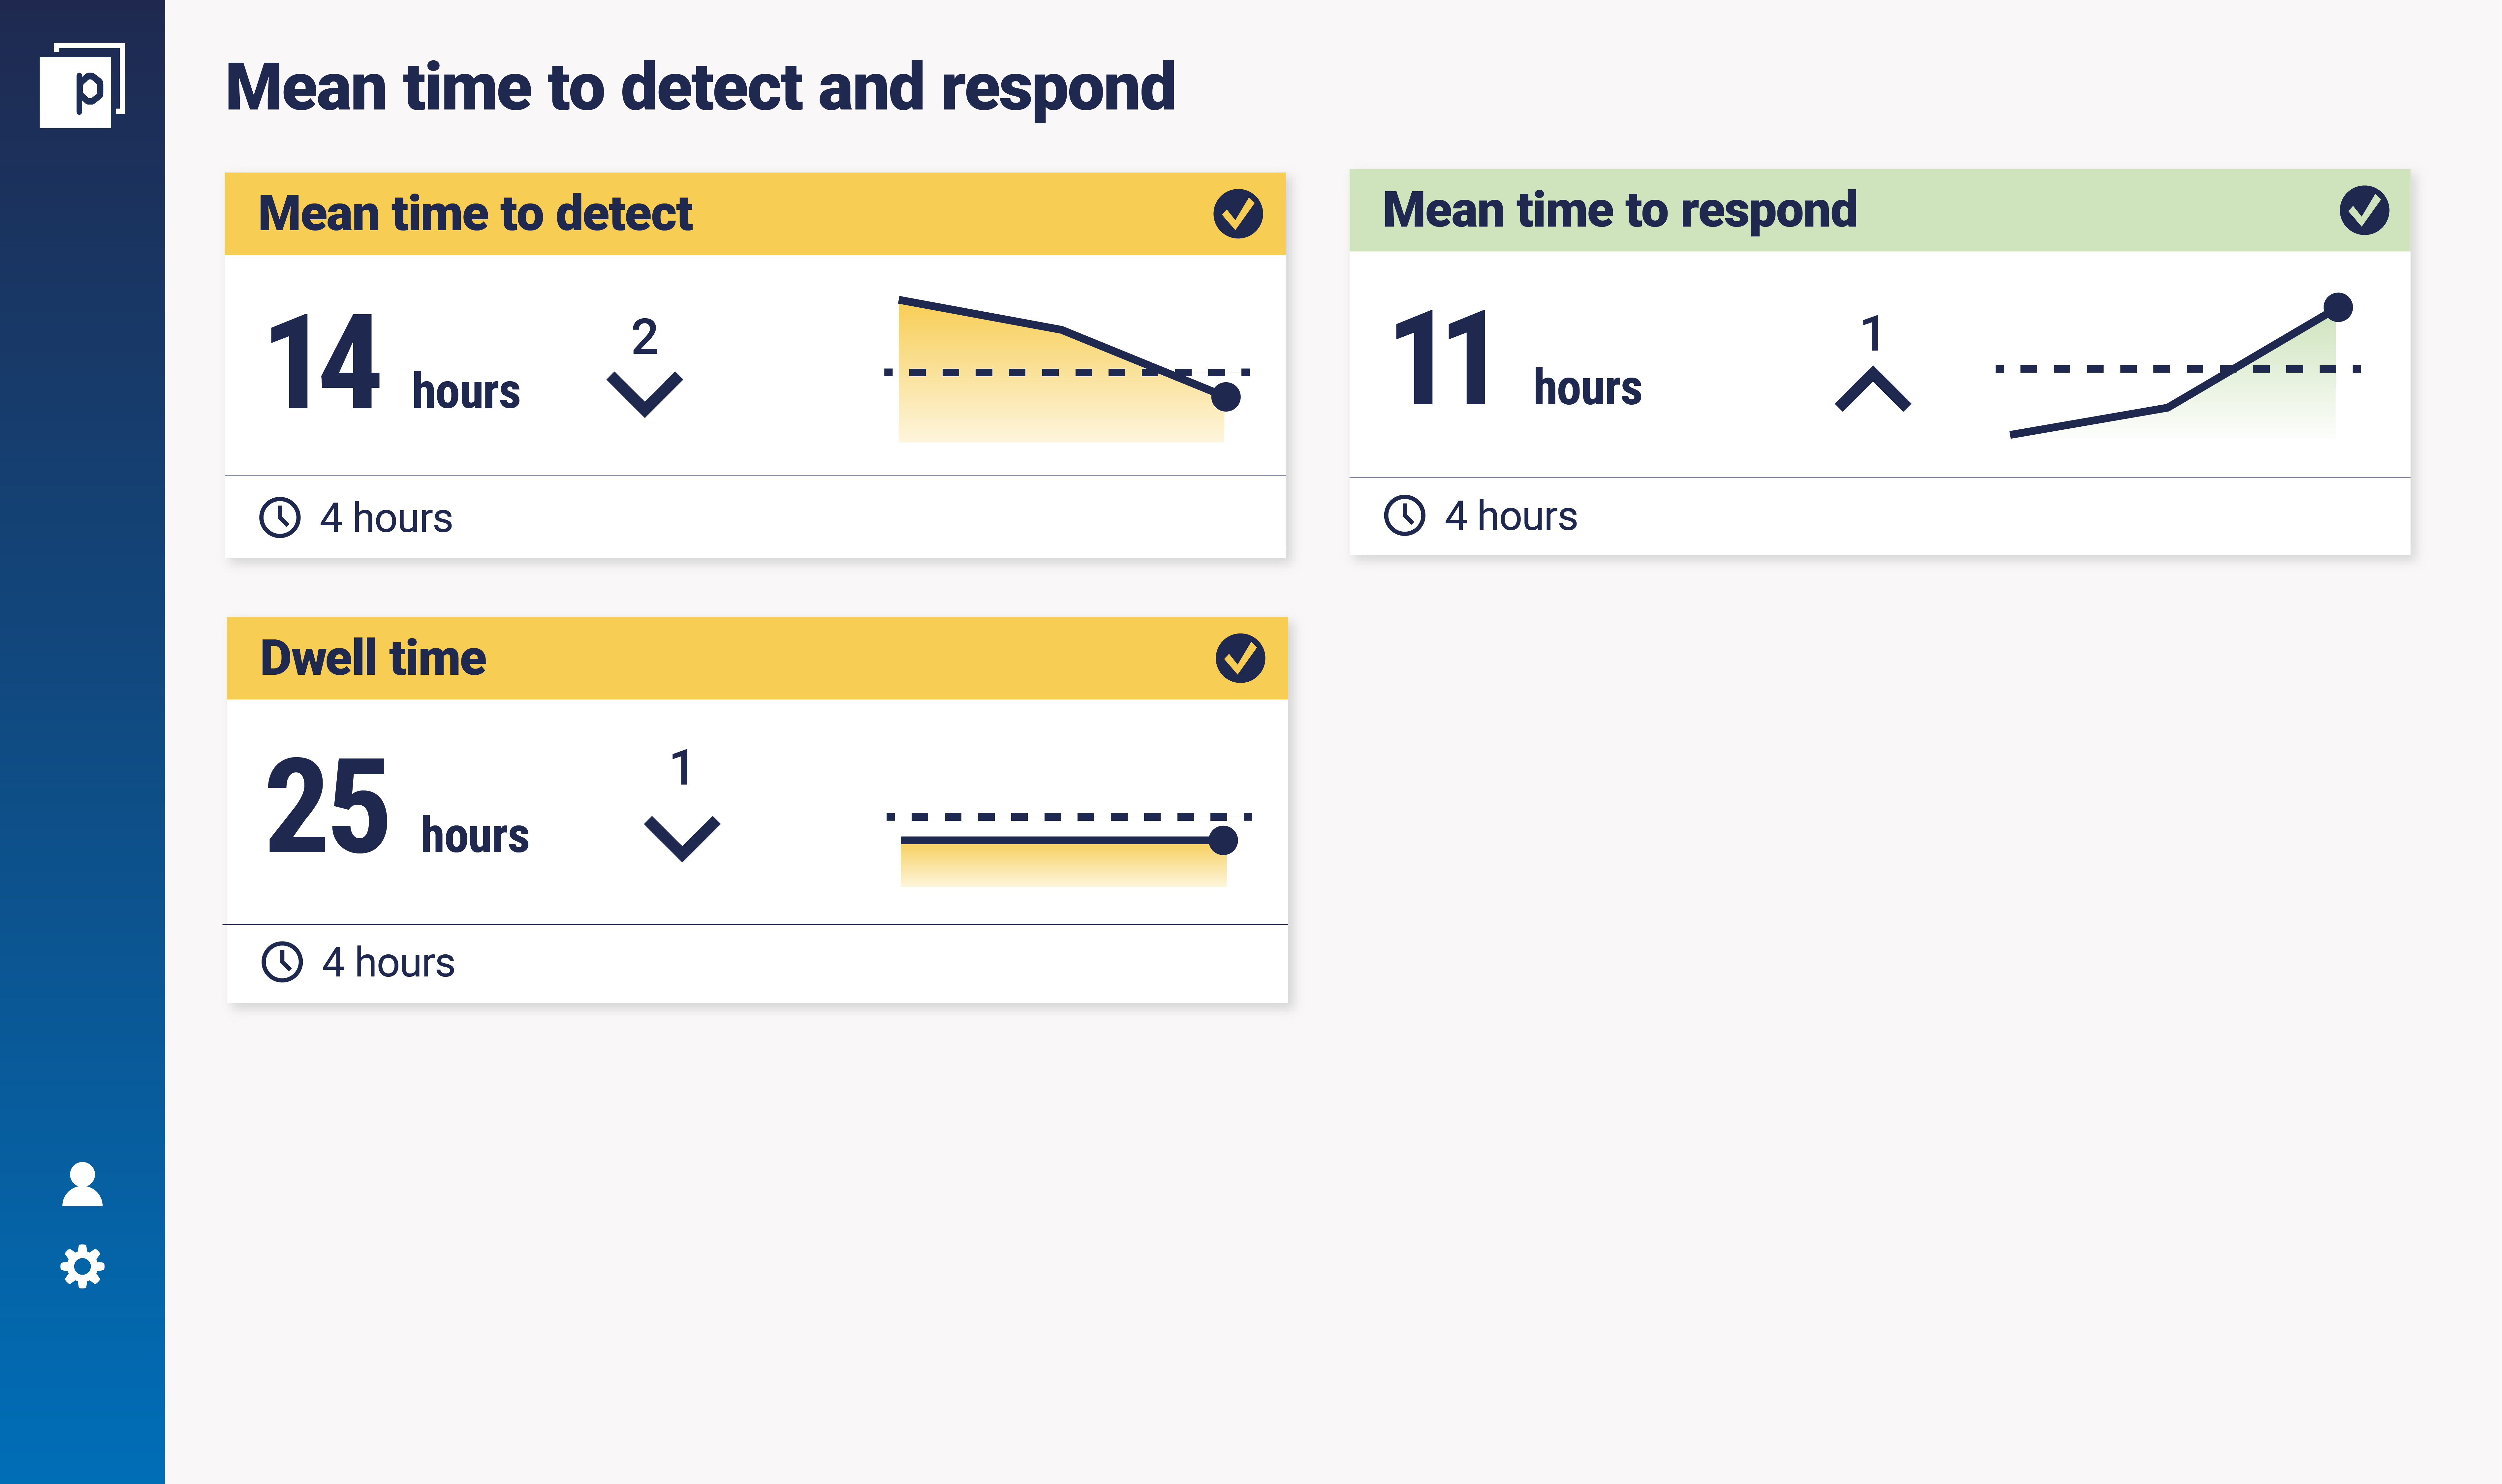 Mean time to detect and respond dashboard